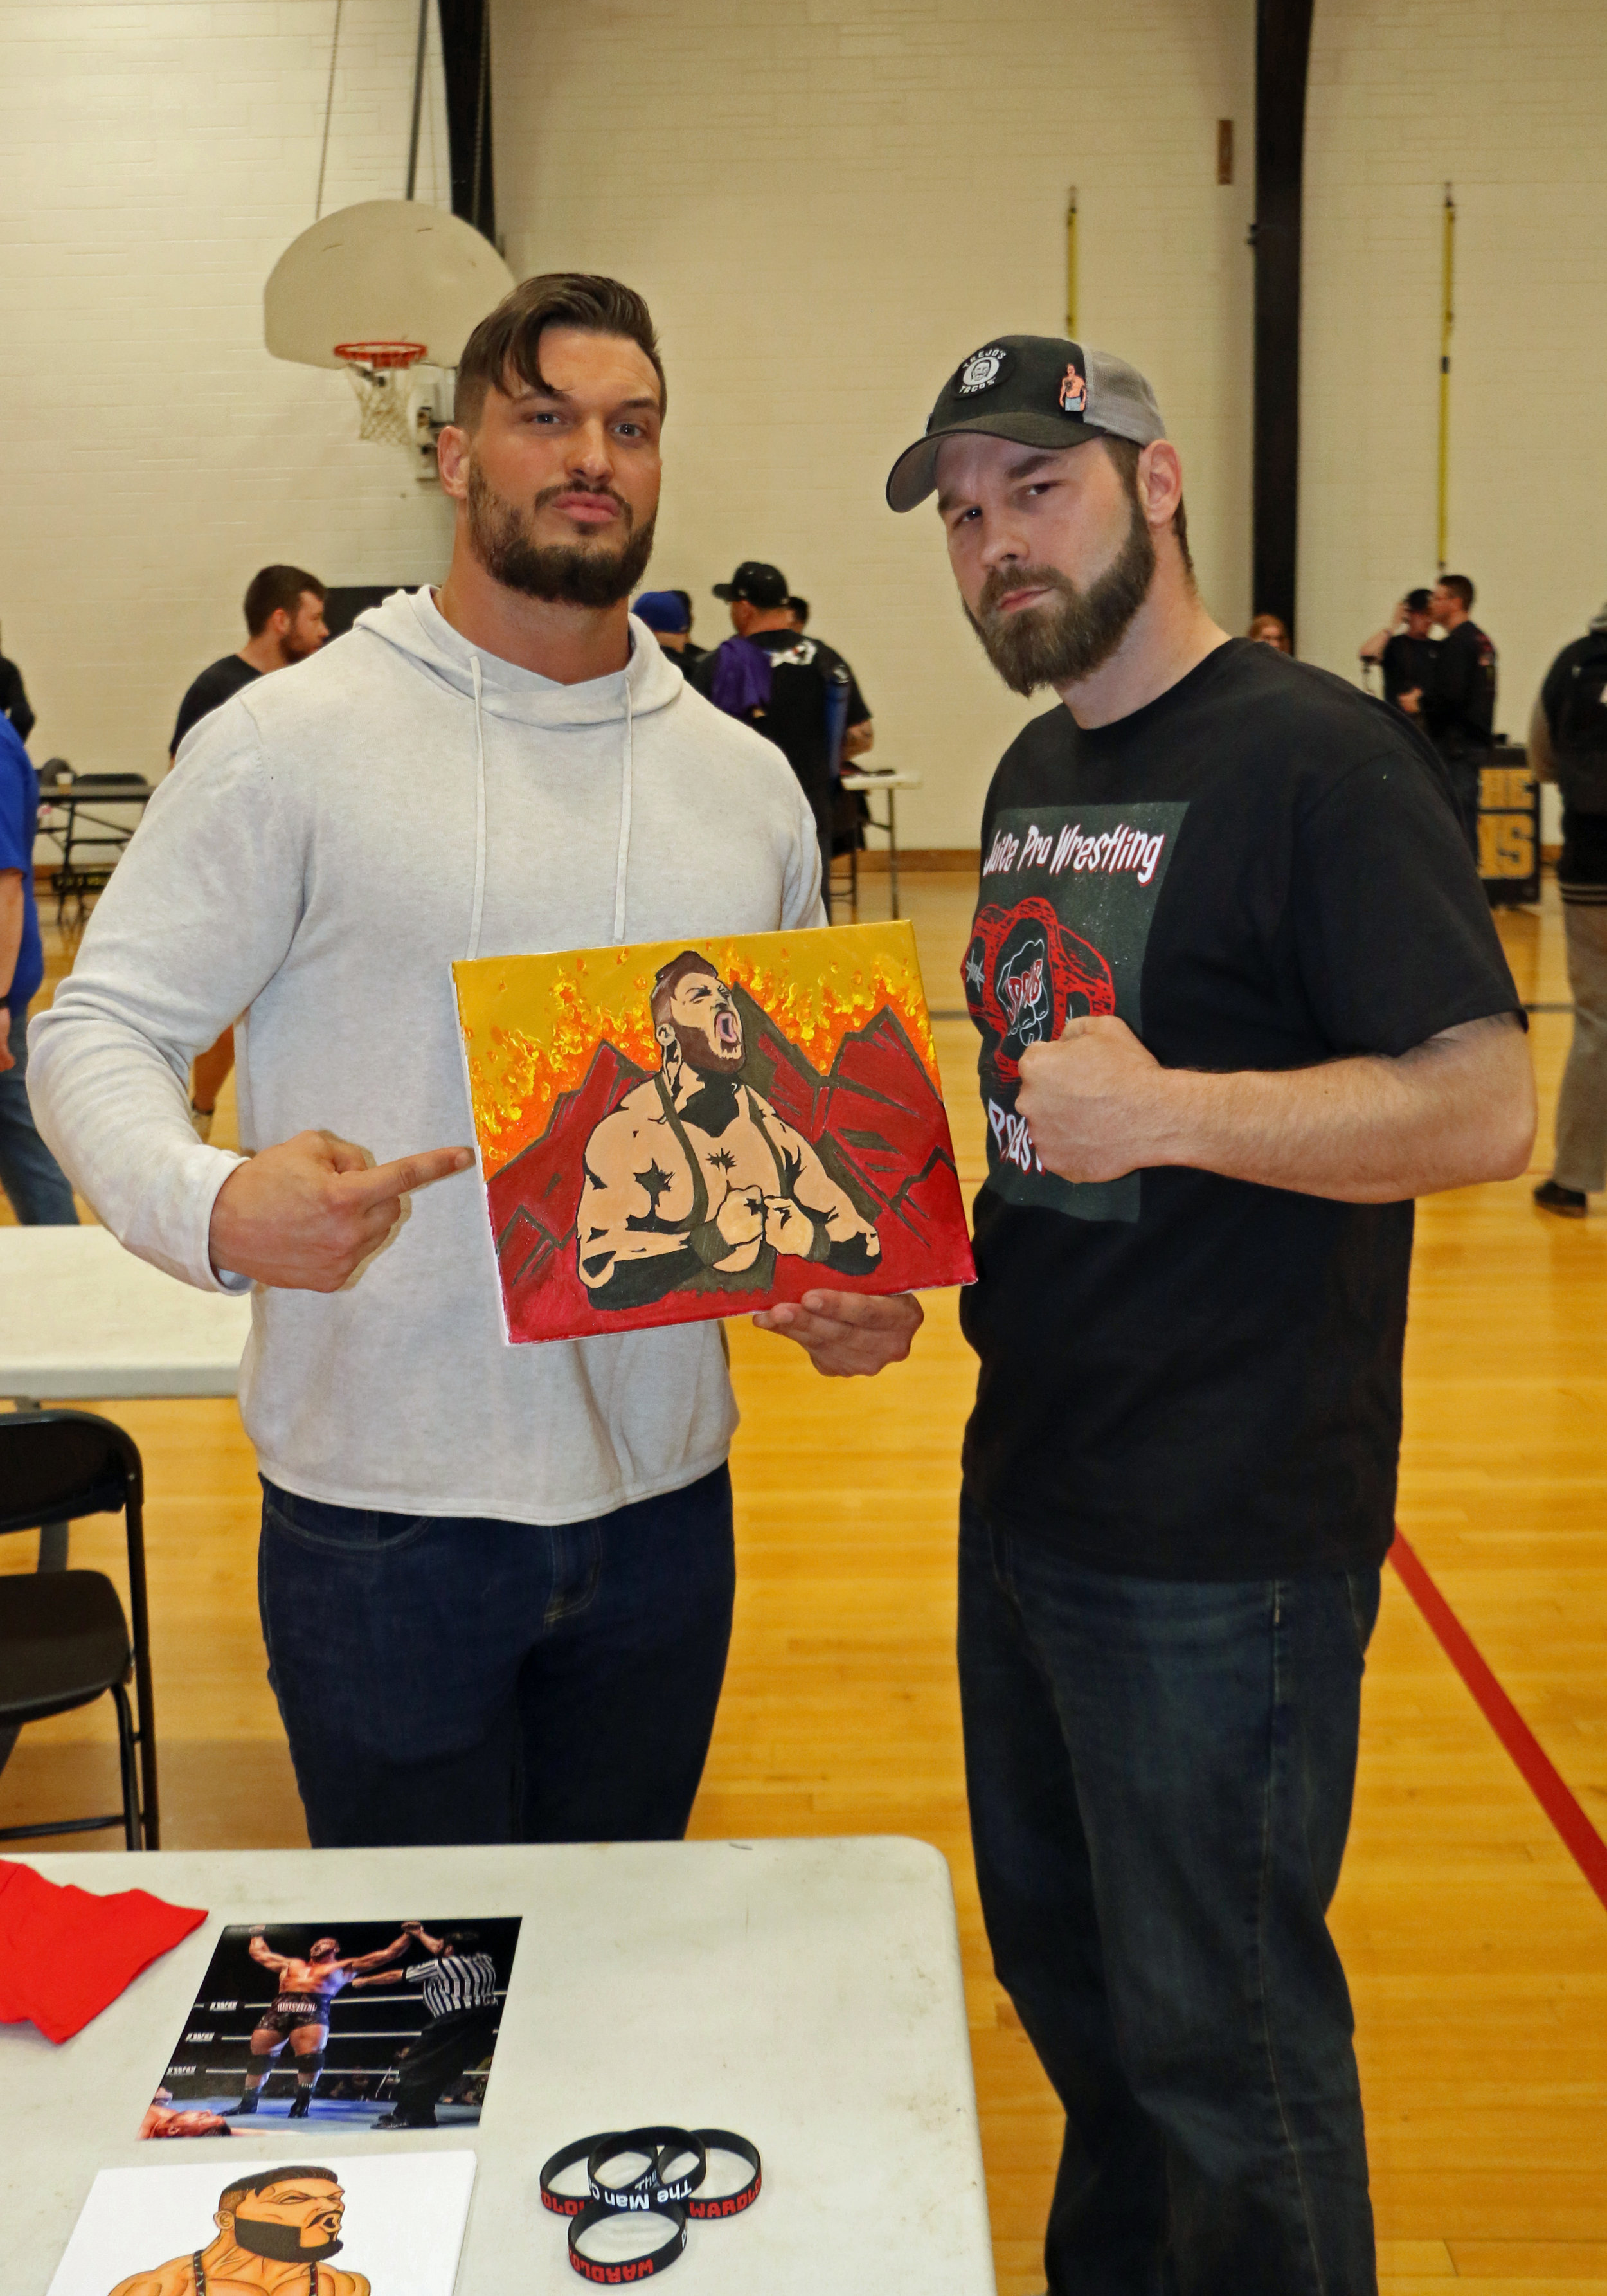 Wardlow poses with J.R. (and his artwork) from the Juice Pro Wrestling Podcast during the Warrior Wrestling 5 VIP Fan Fest.